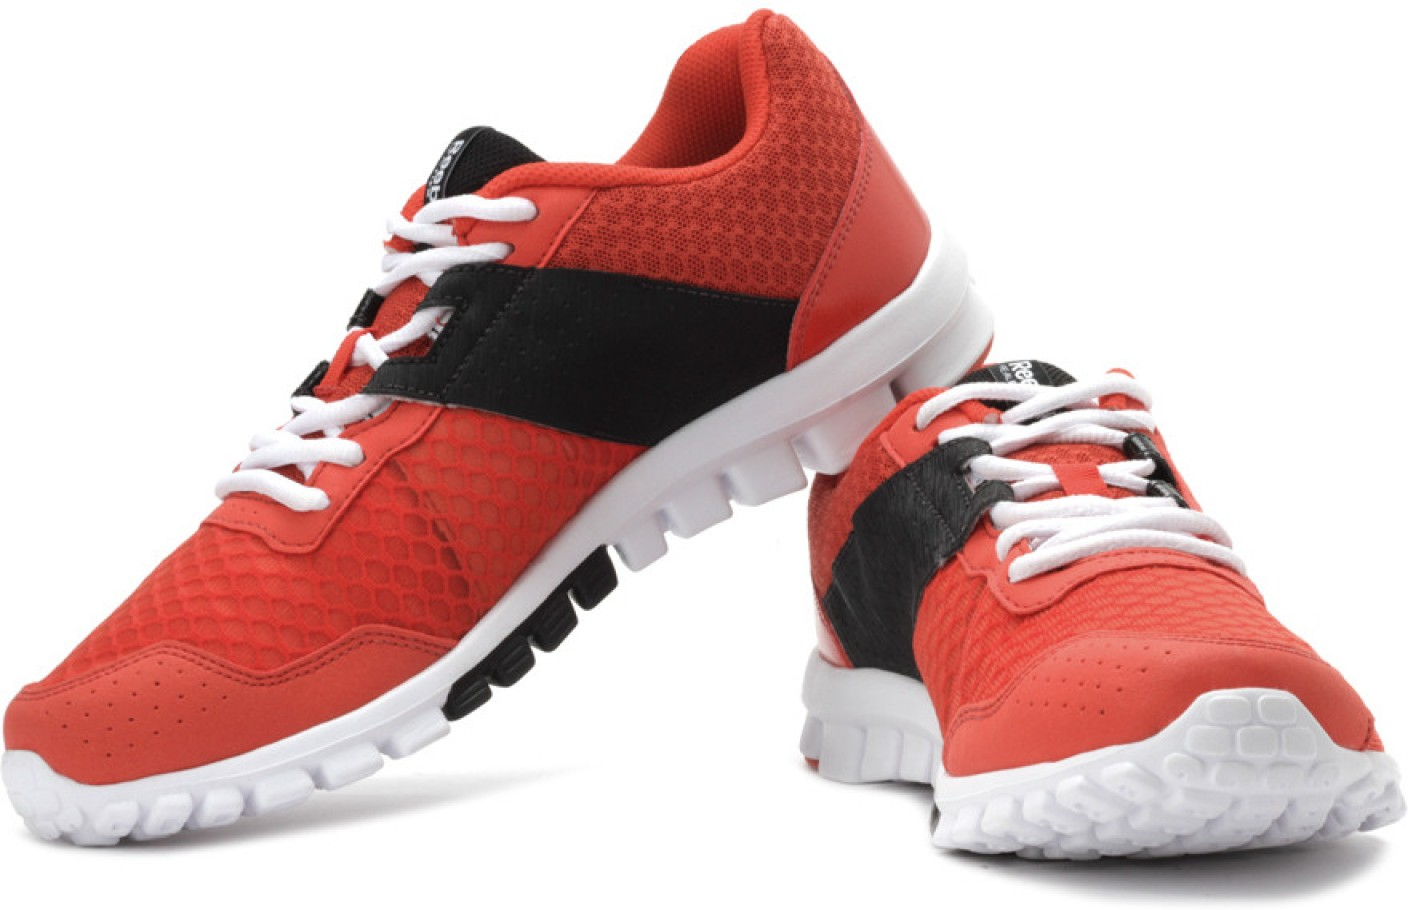 reebok realflex running shoes sale